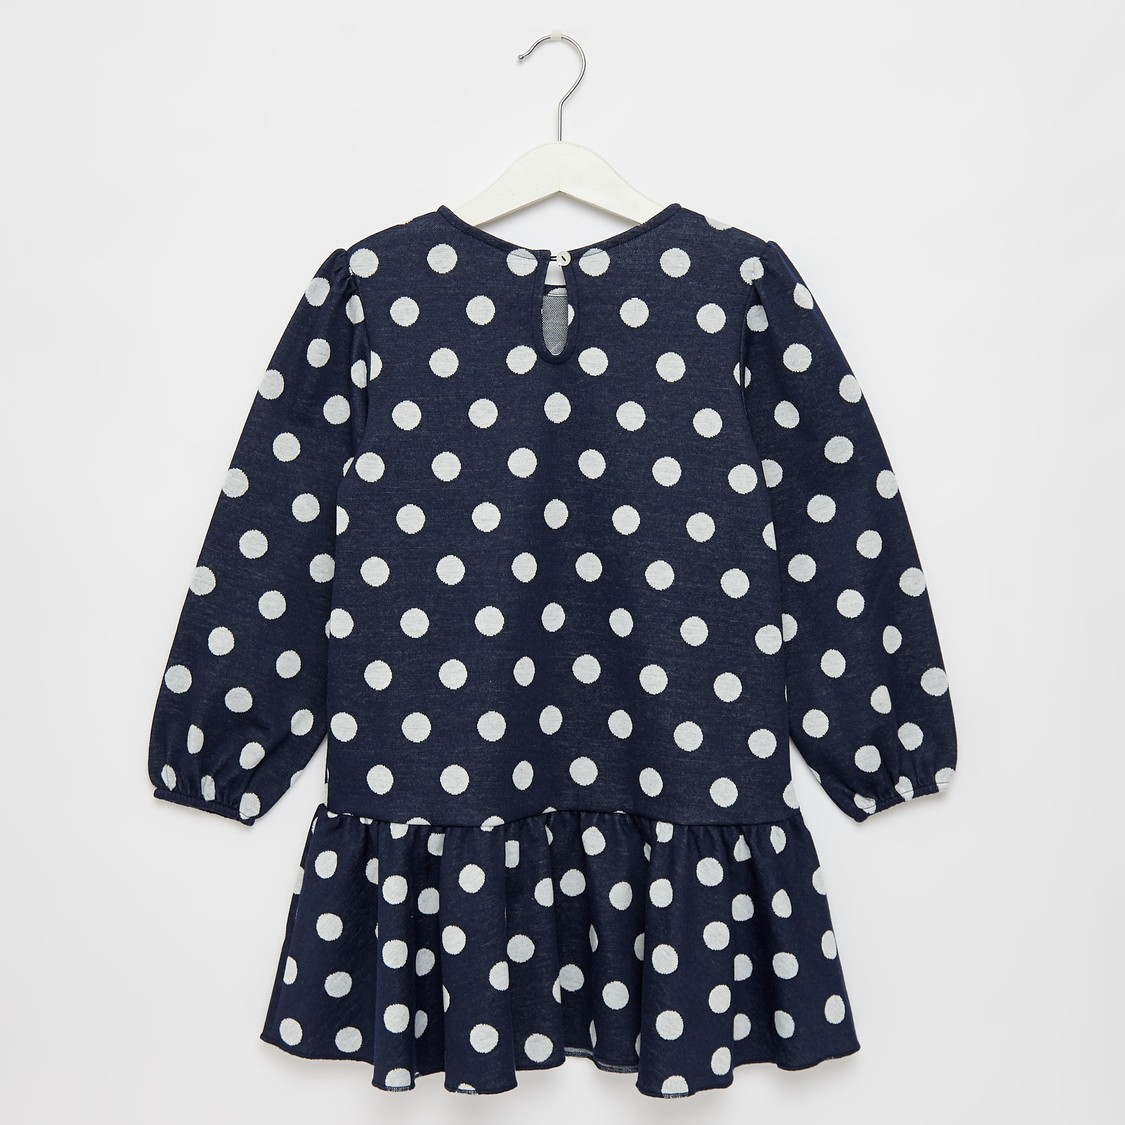 Polka Dot Print Round Neck Dress with Puff Sleeves